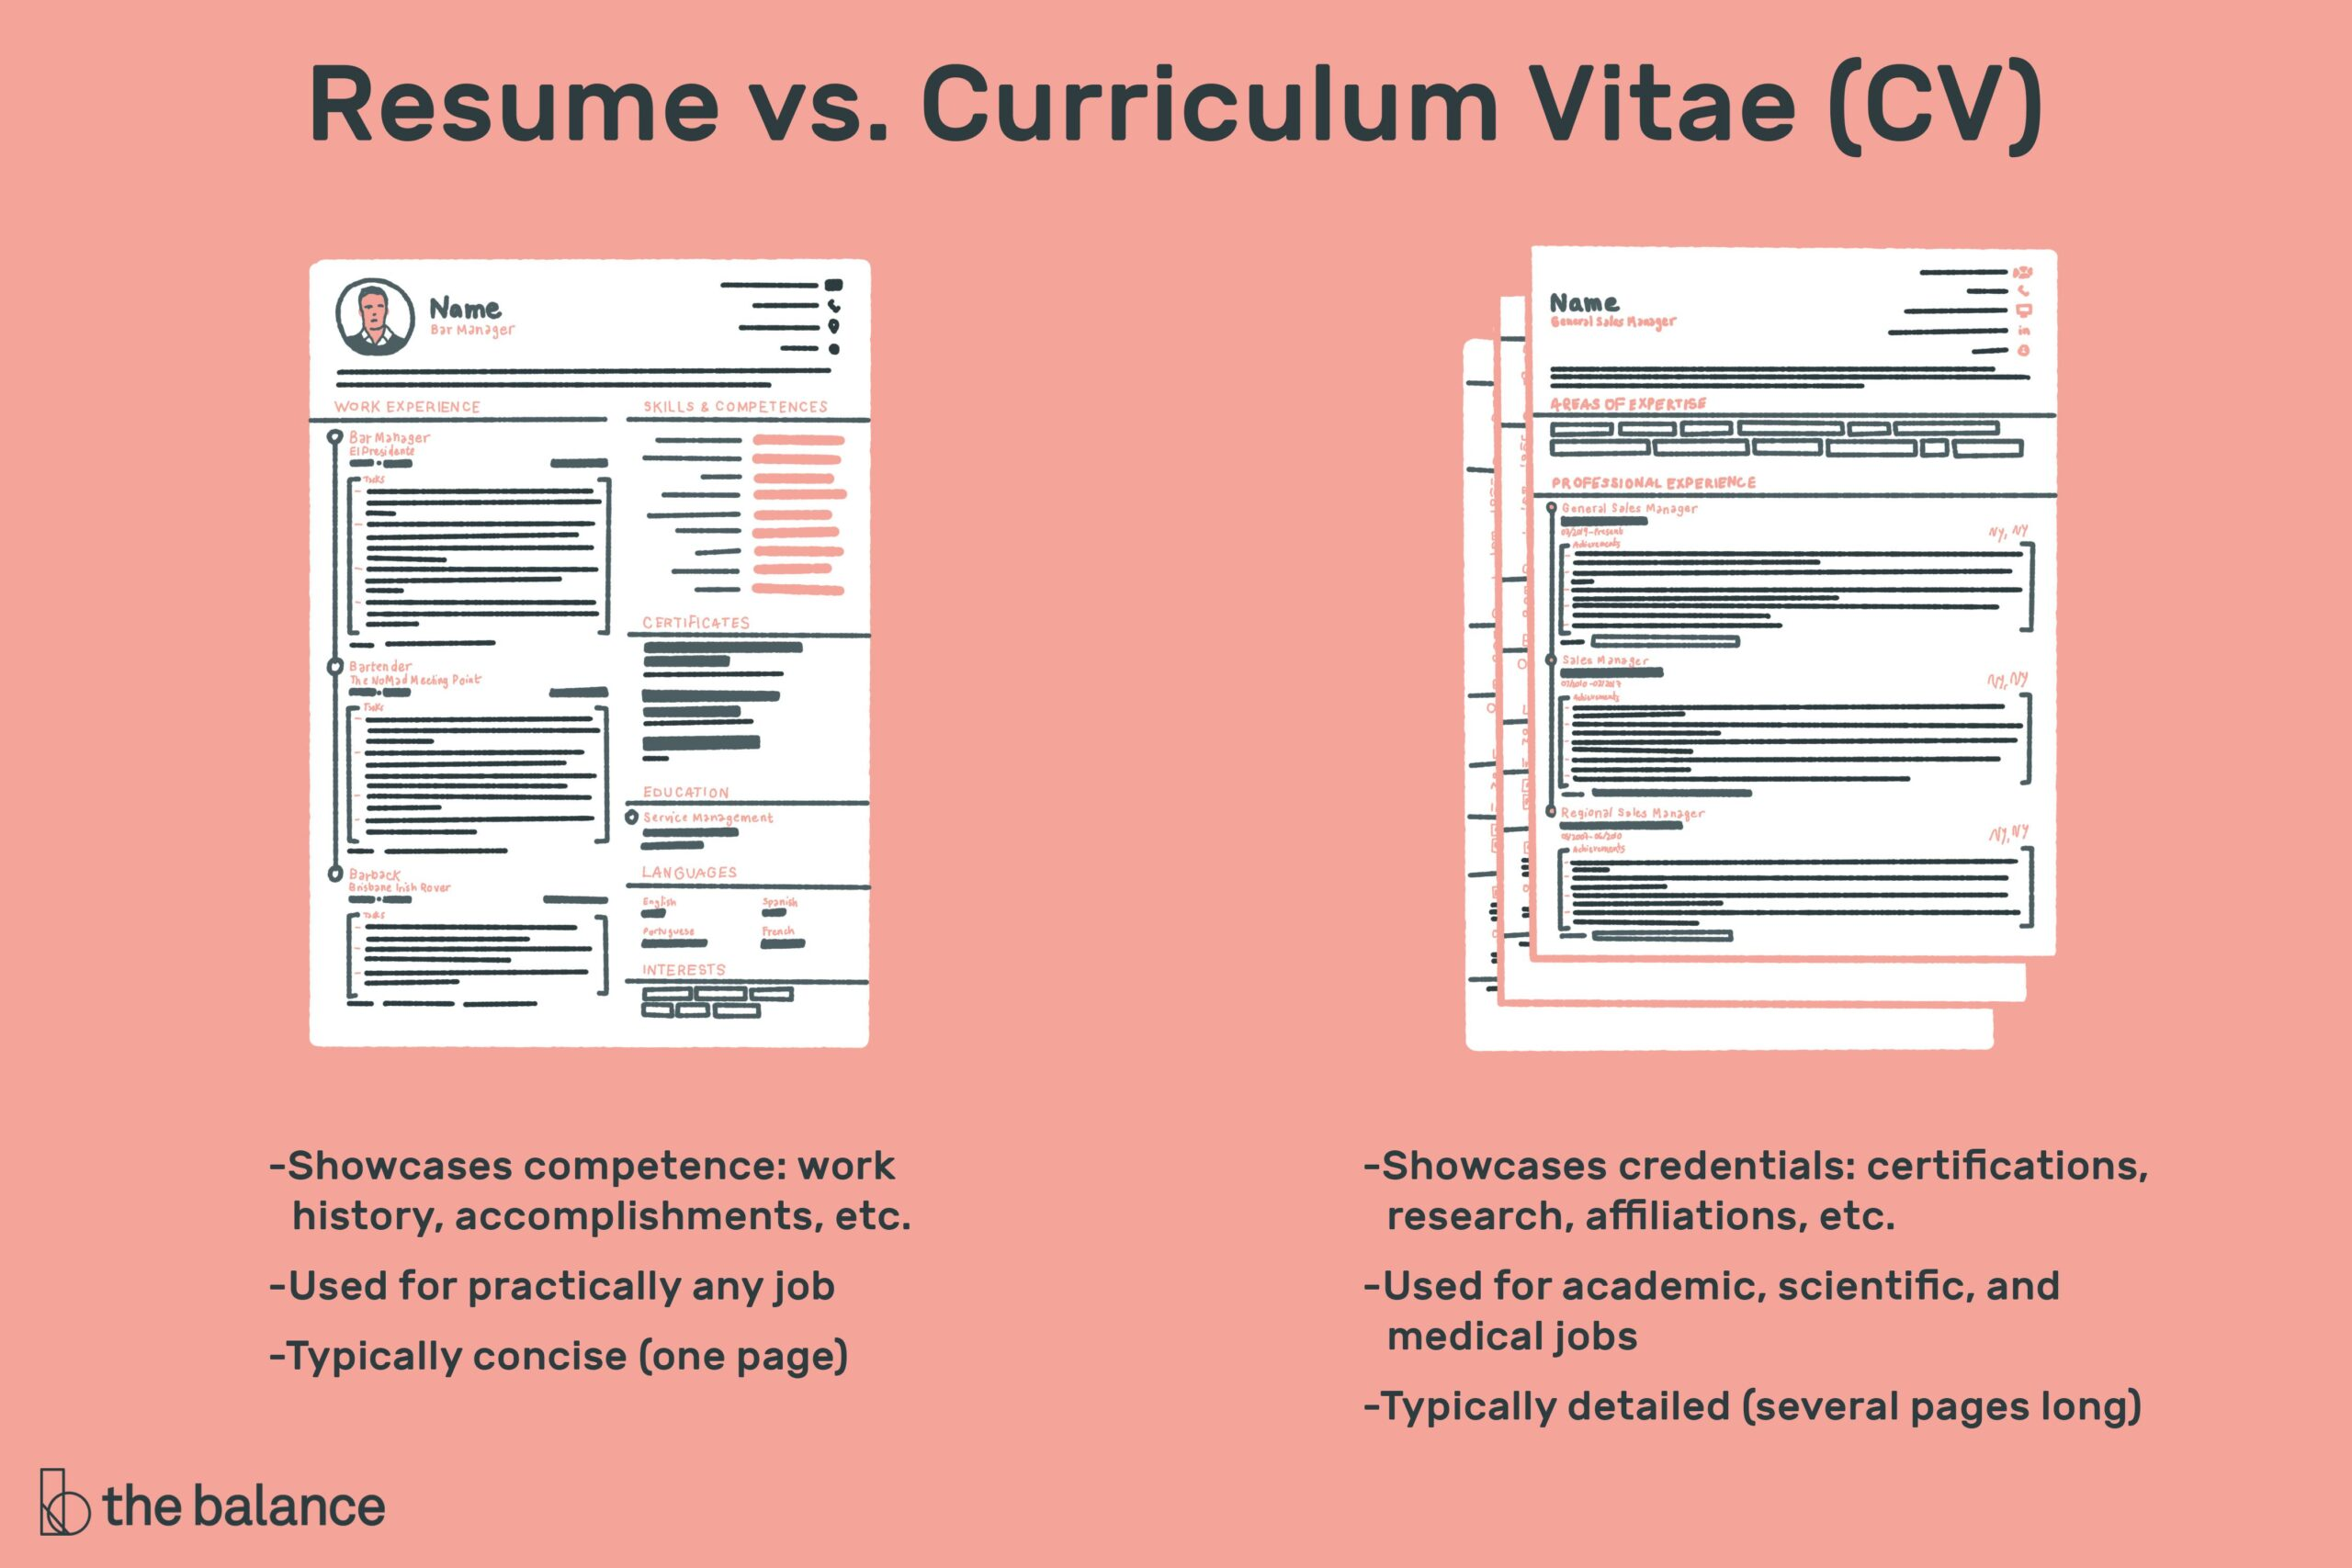 the difference between resume and curriculum vitae another word for cv vs final customer Resume Another Word For Resume